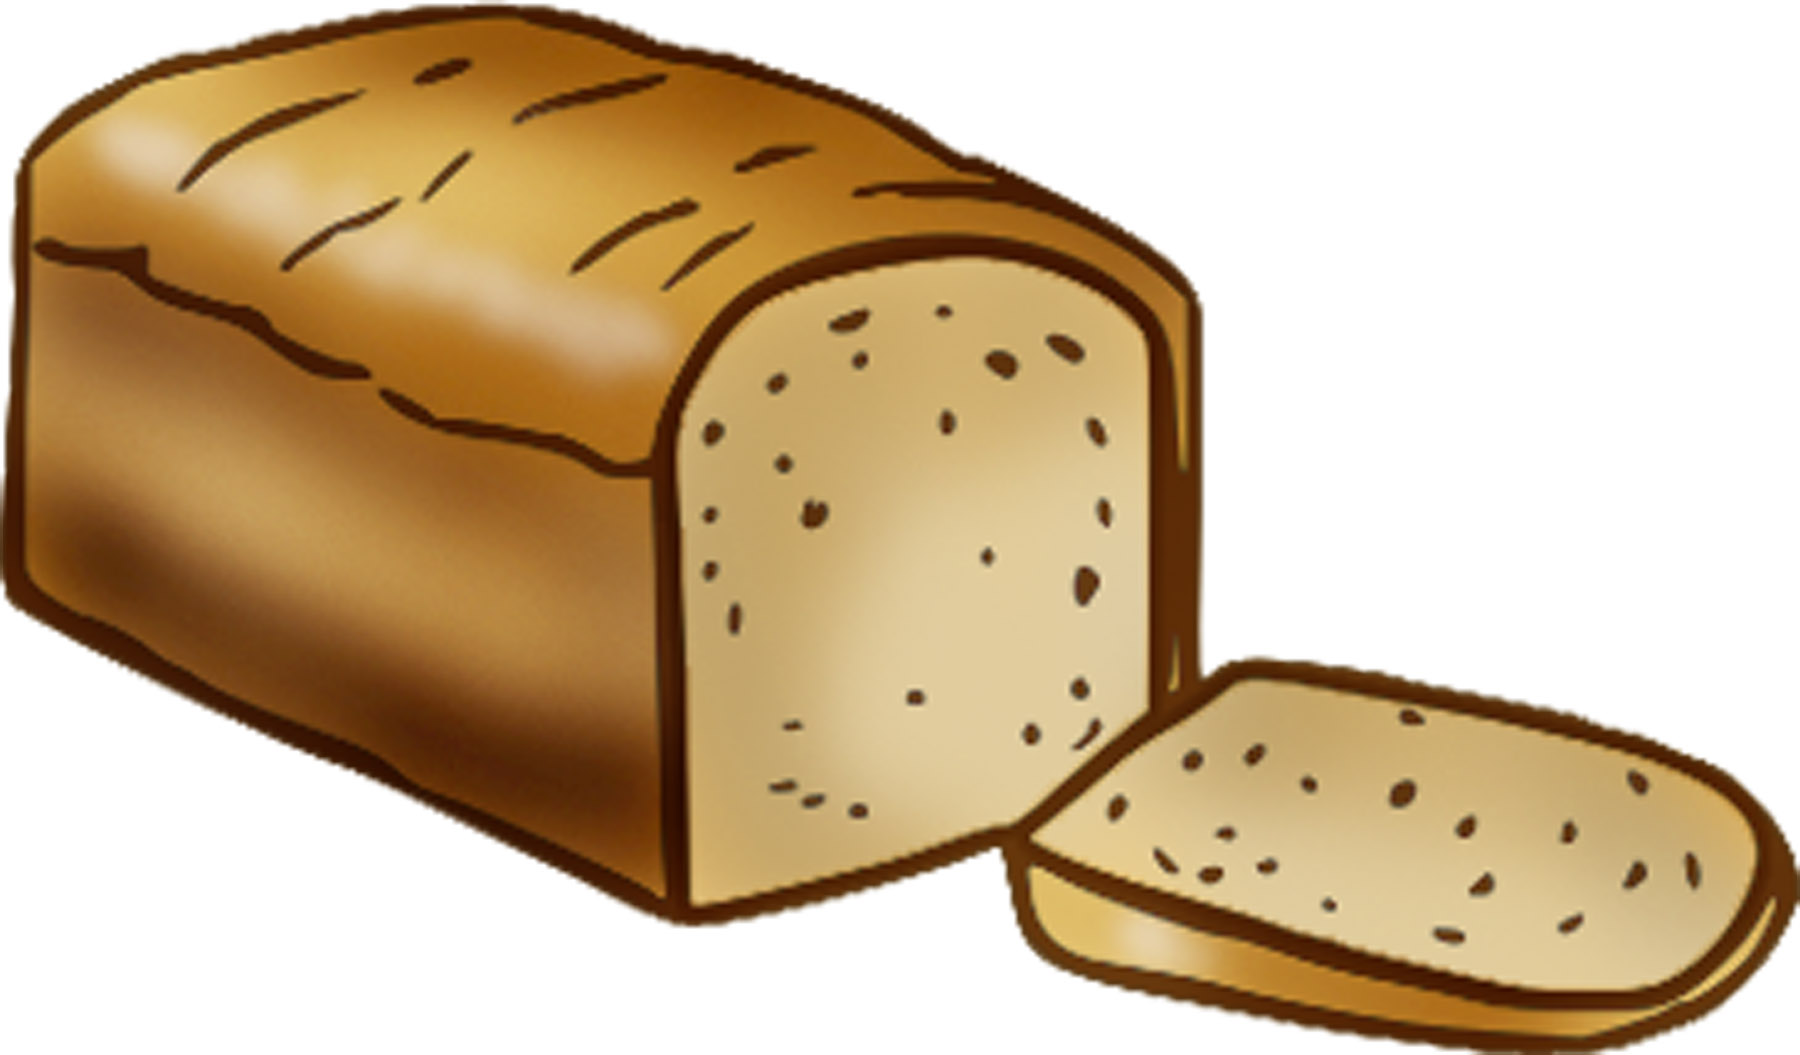 Loaf of bread clipart and illustration clip art vector